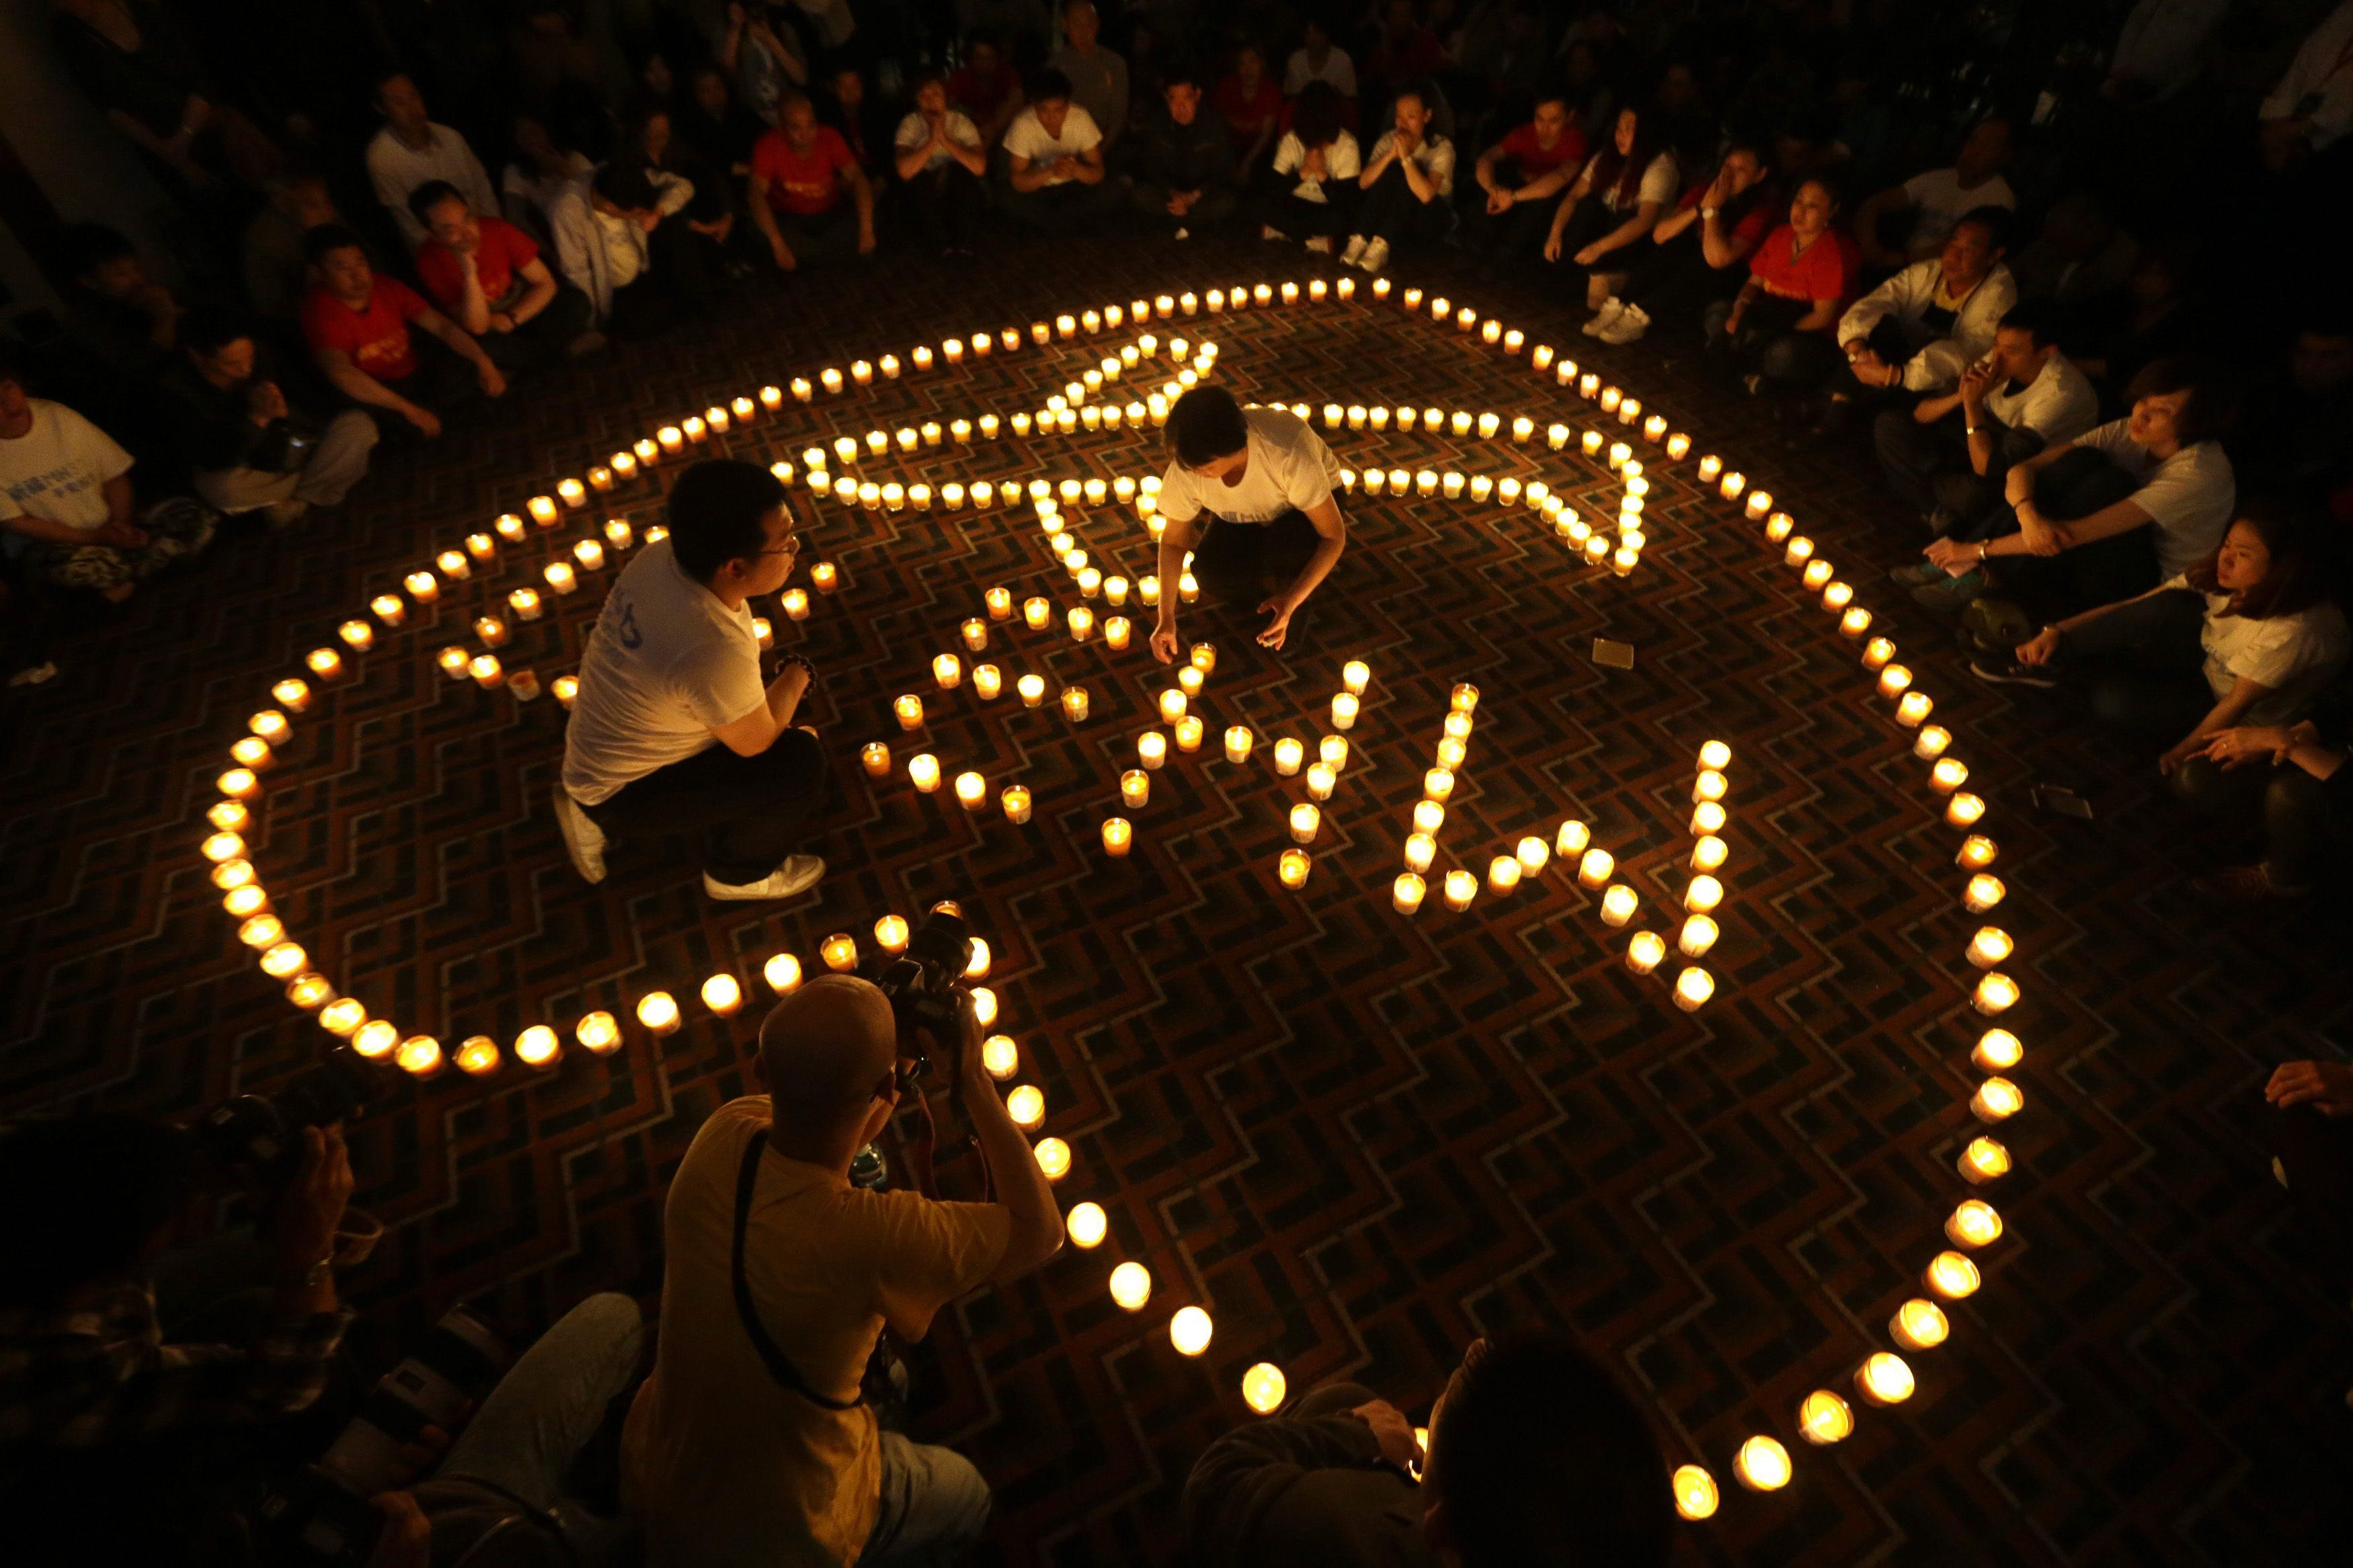 Flight MH370 Prayer vigil 3